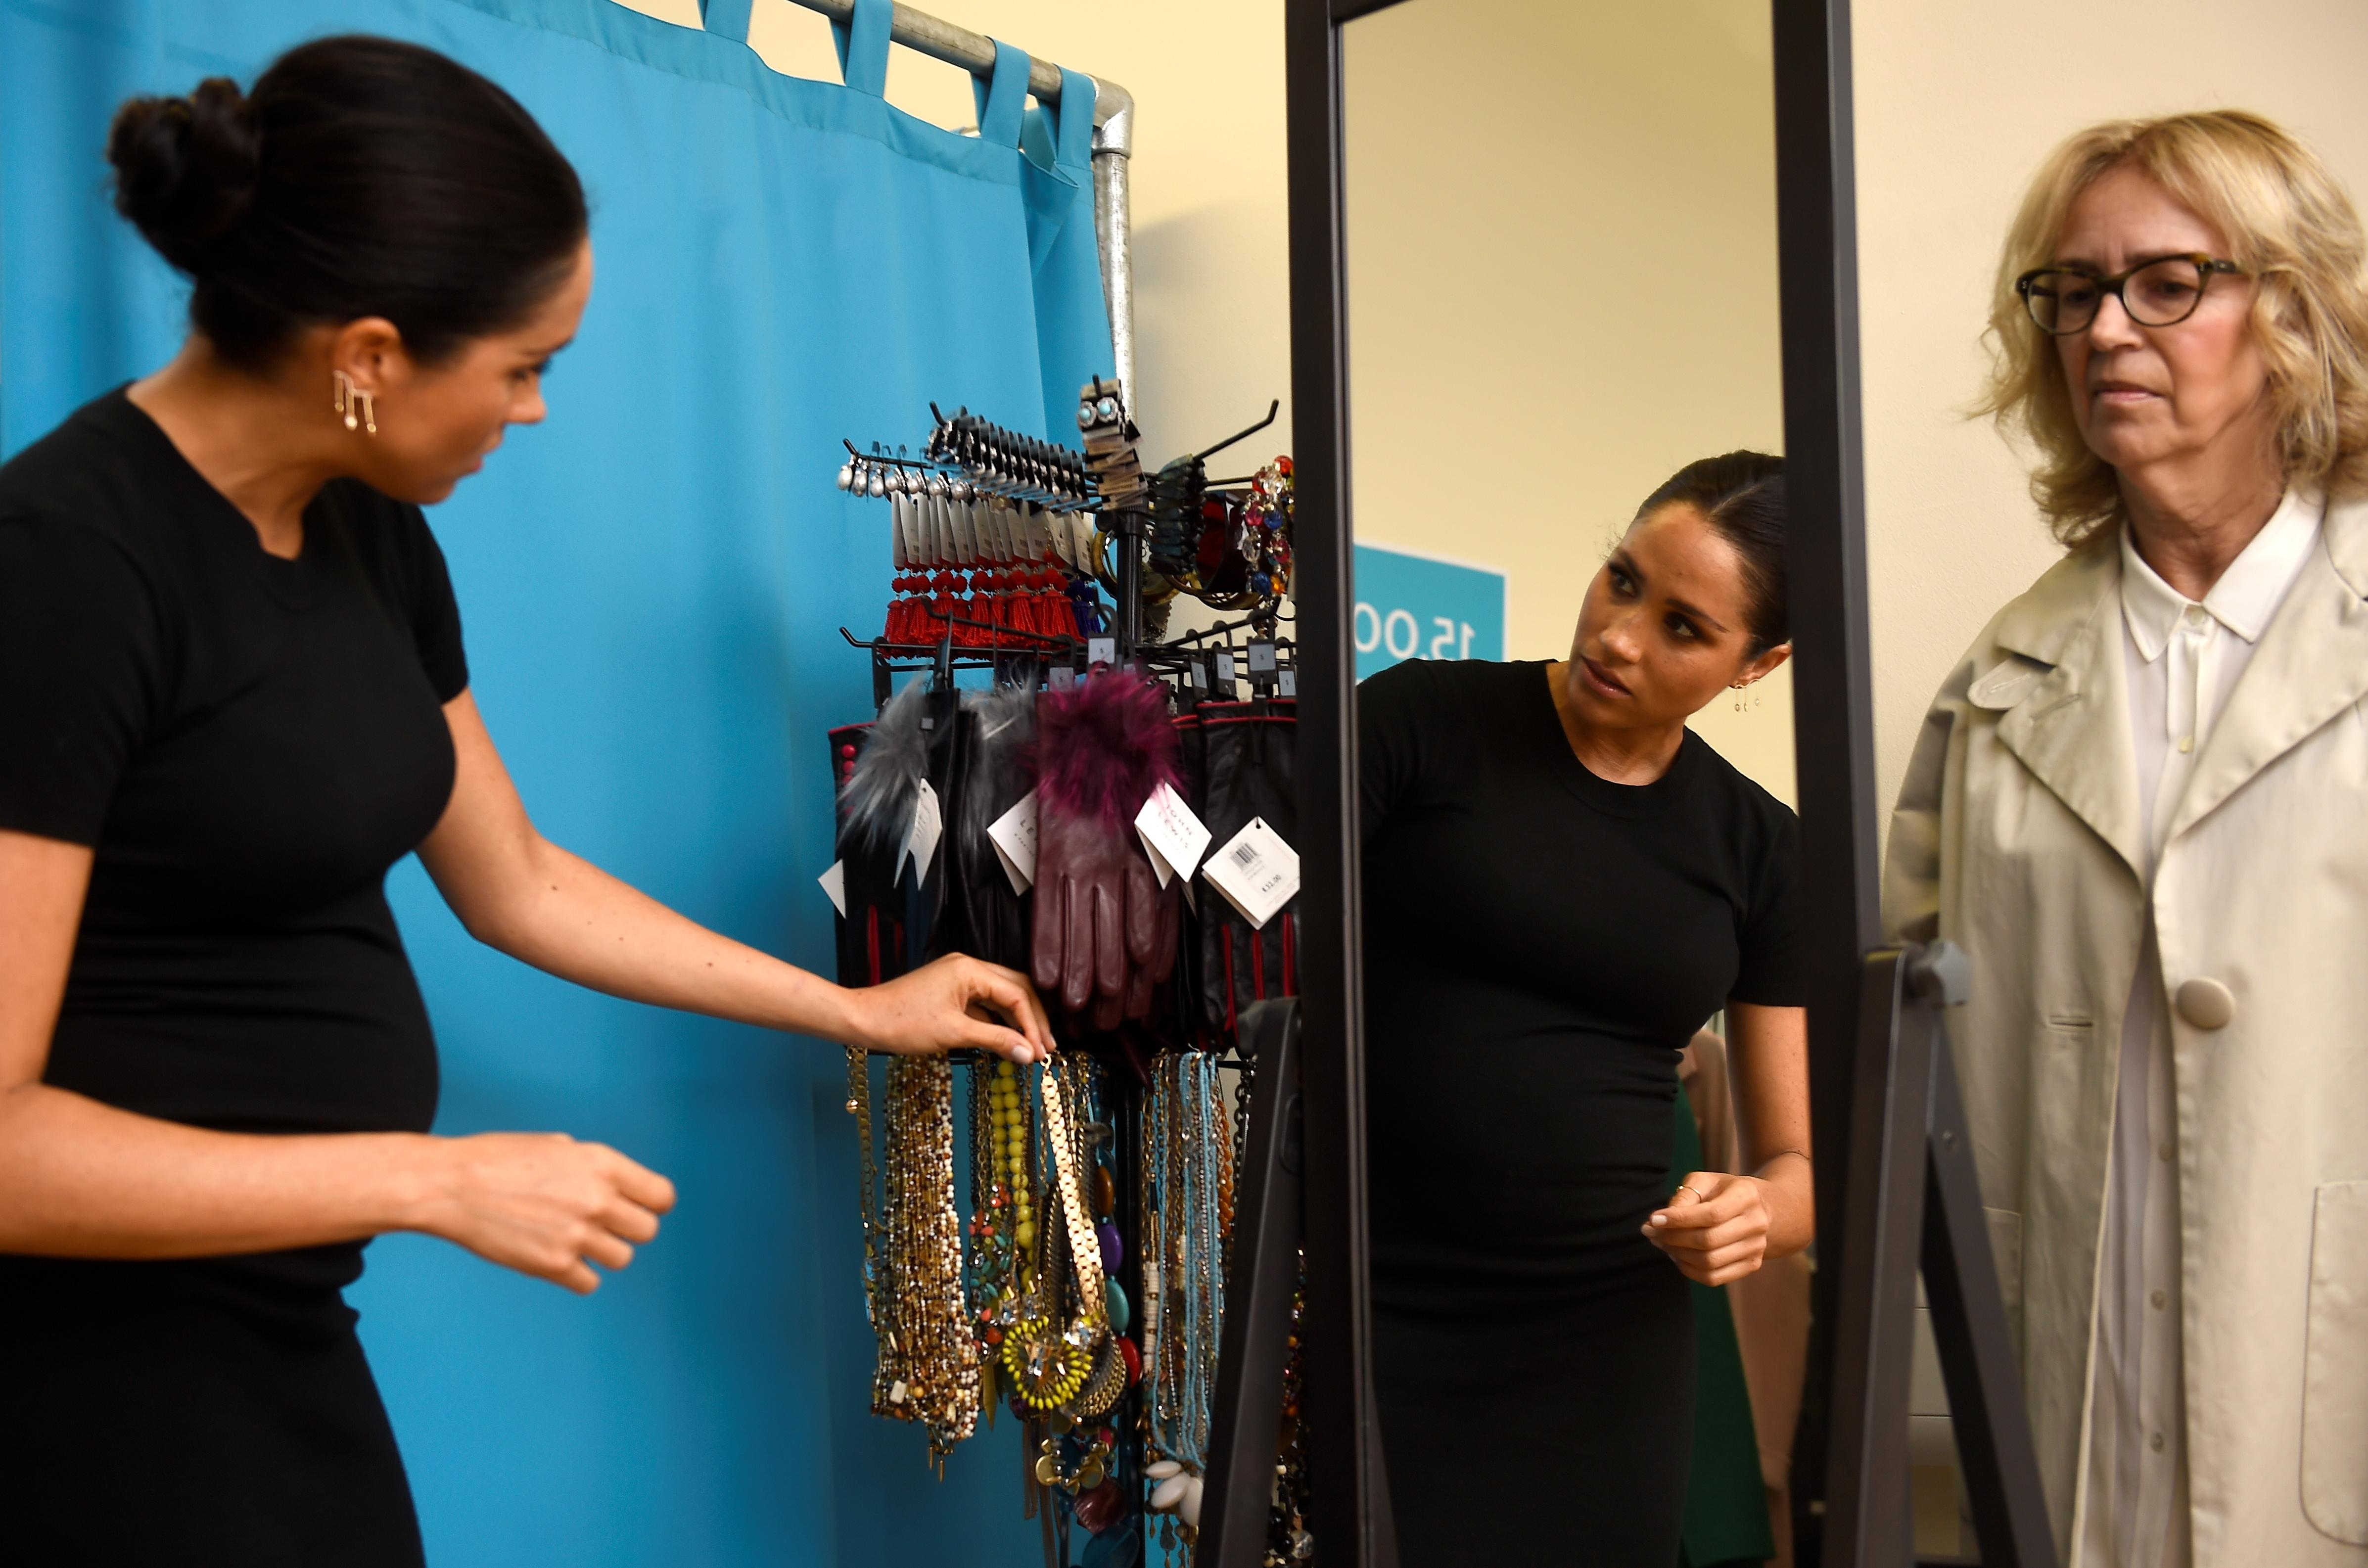 Meghan, the Duchess of Sussex, picks out a necklace with Lady Juliet Hughes-Hallett during her visit at Smart Works charity in West London, Britain, January 10, 2019. REUTERS/Clodagh Kilcoyne/Pool